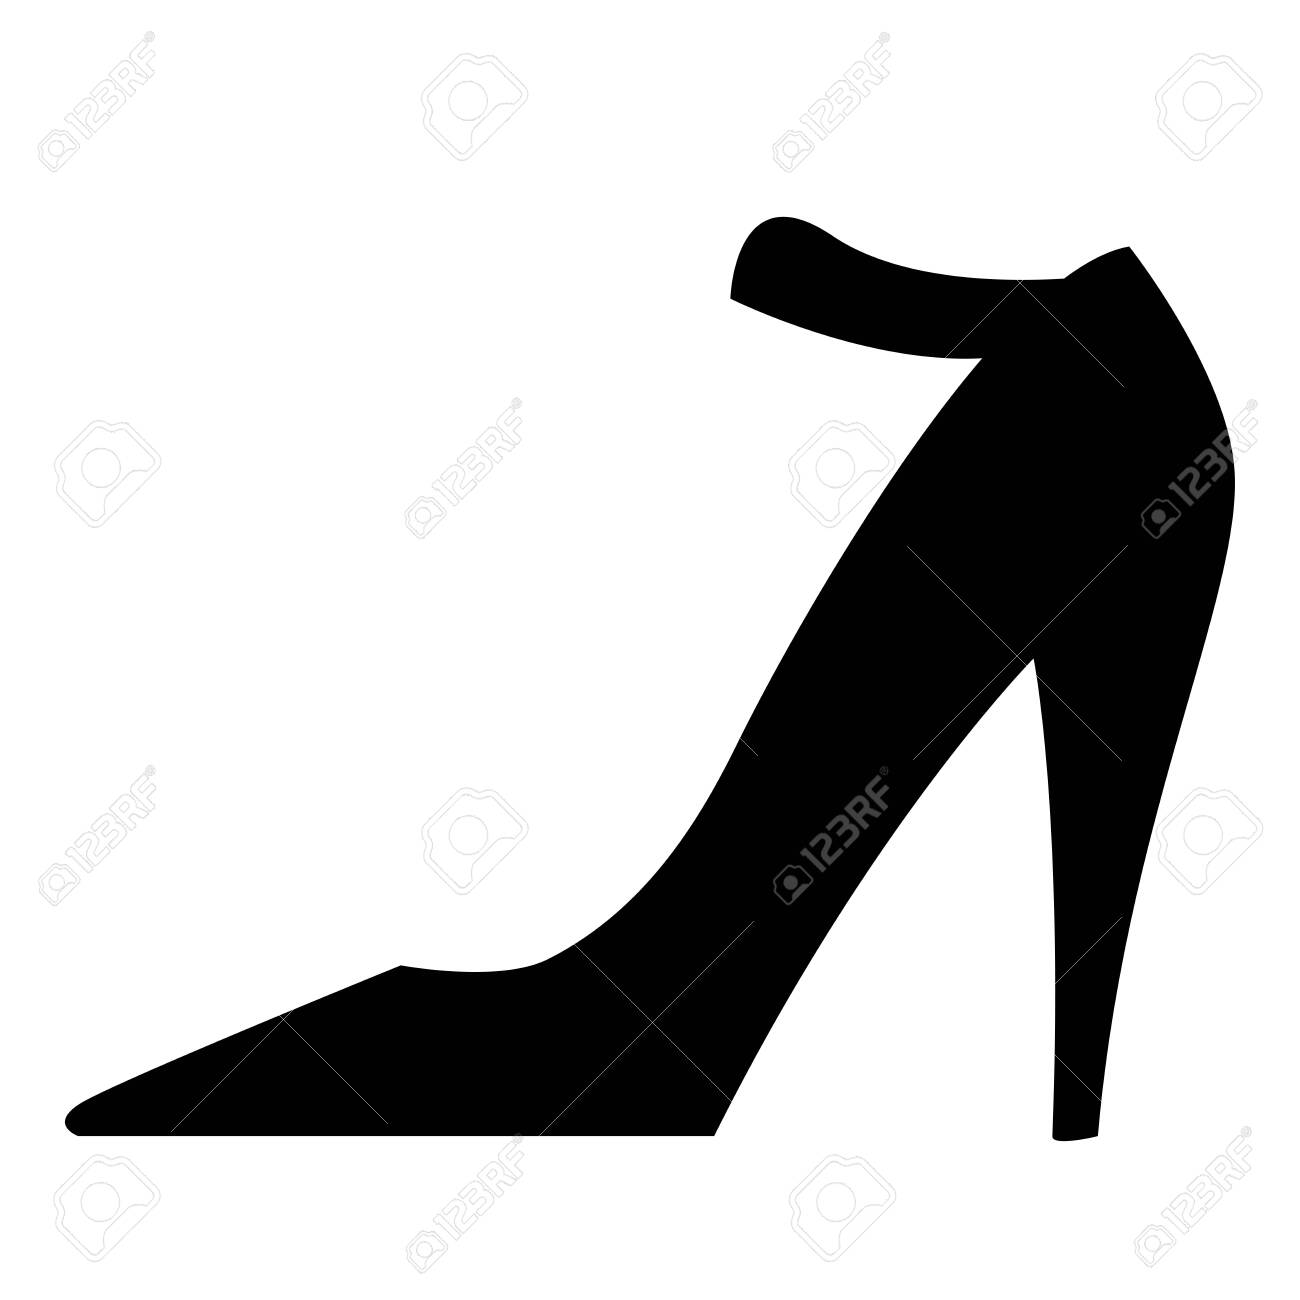 Black isolated icon of elegant classic shoe with high heel for women on white background. Silhouette of shoe. Modern vector illustration. Elegant